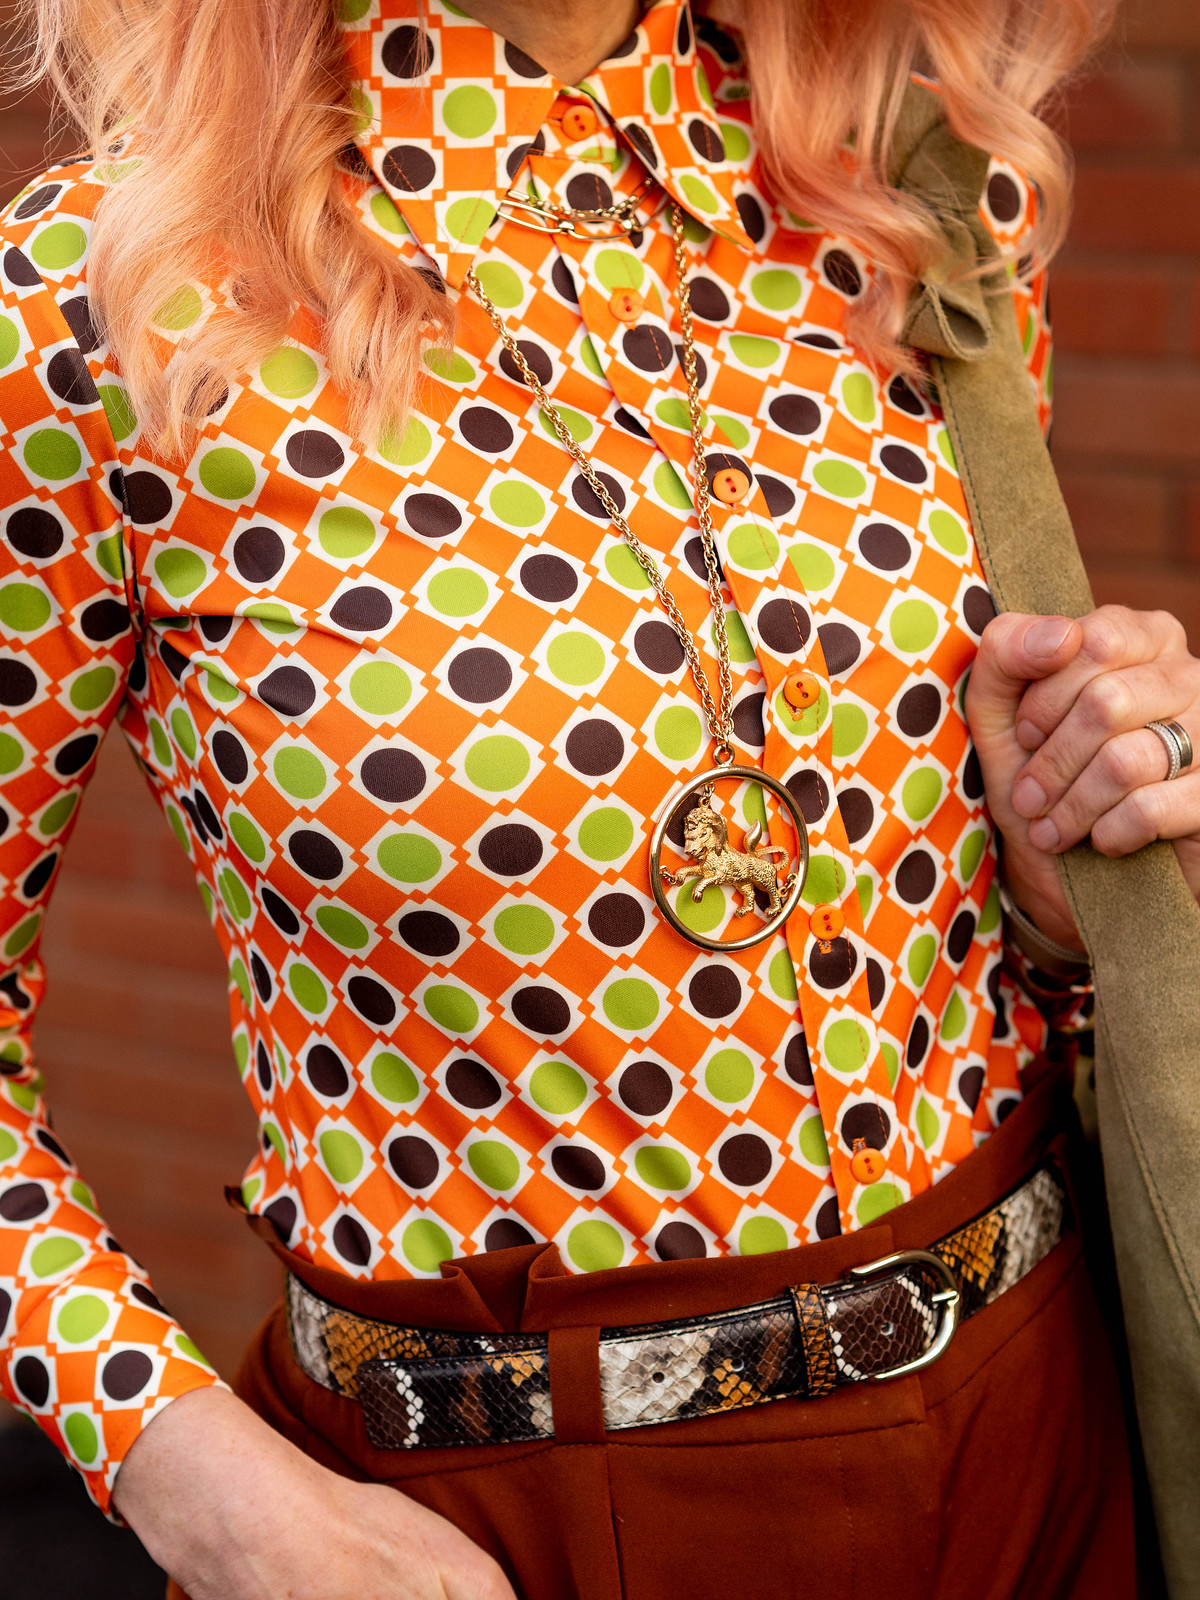 Styling a Vintage 70s Shirt With Vintage Jewellery: Catherine Summers is wearing an orange, green and brown patterned vintage 70s shirt with gold jewellery, brown paperbag trousers, pointed flats & oversized sunglasses | Not Dressed As Lamb, Over 40 Style